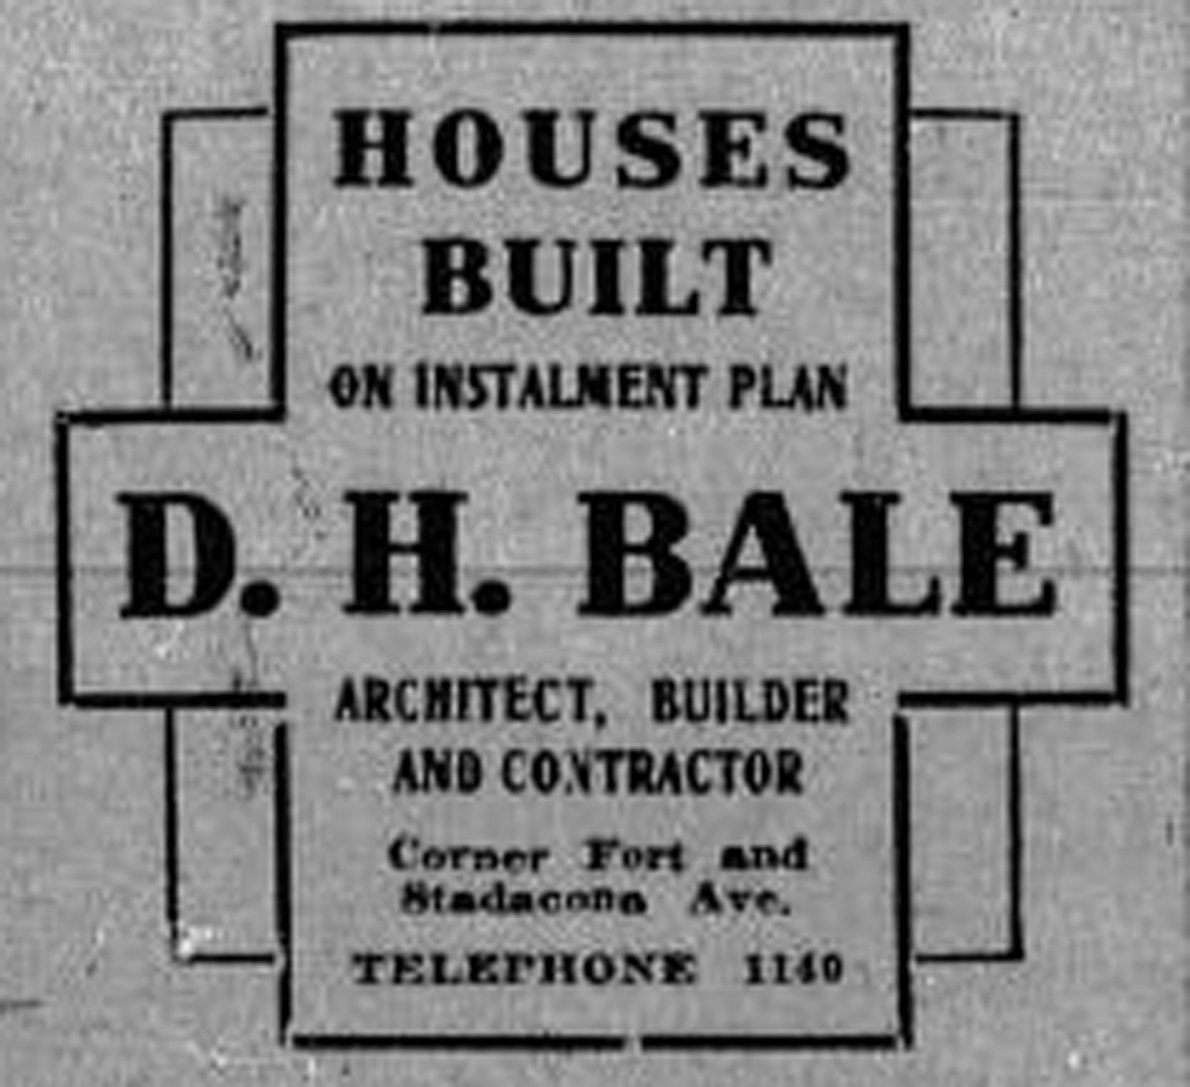 1913 advertisement for D.H. Bale, Architect, Builder And Contractor.